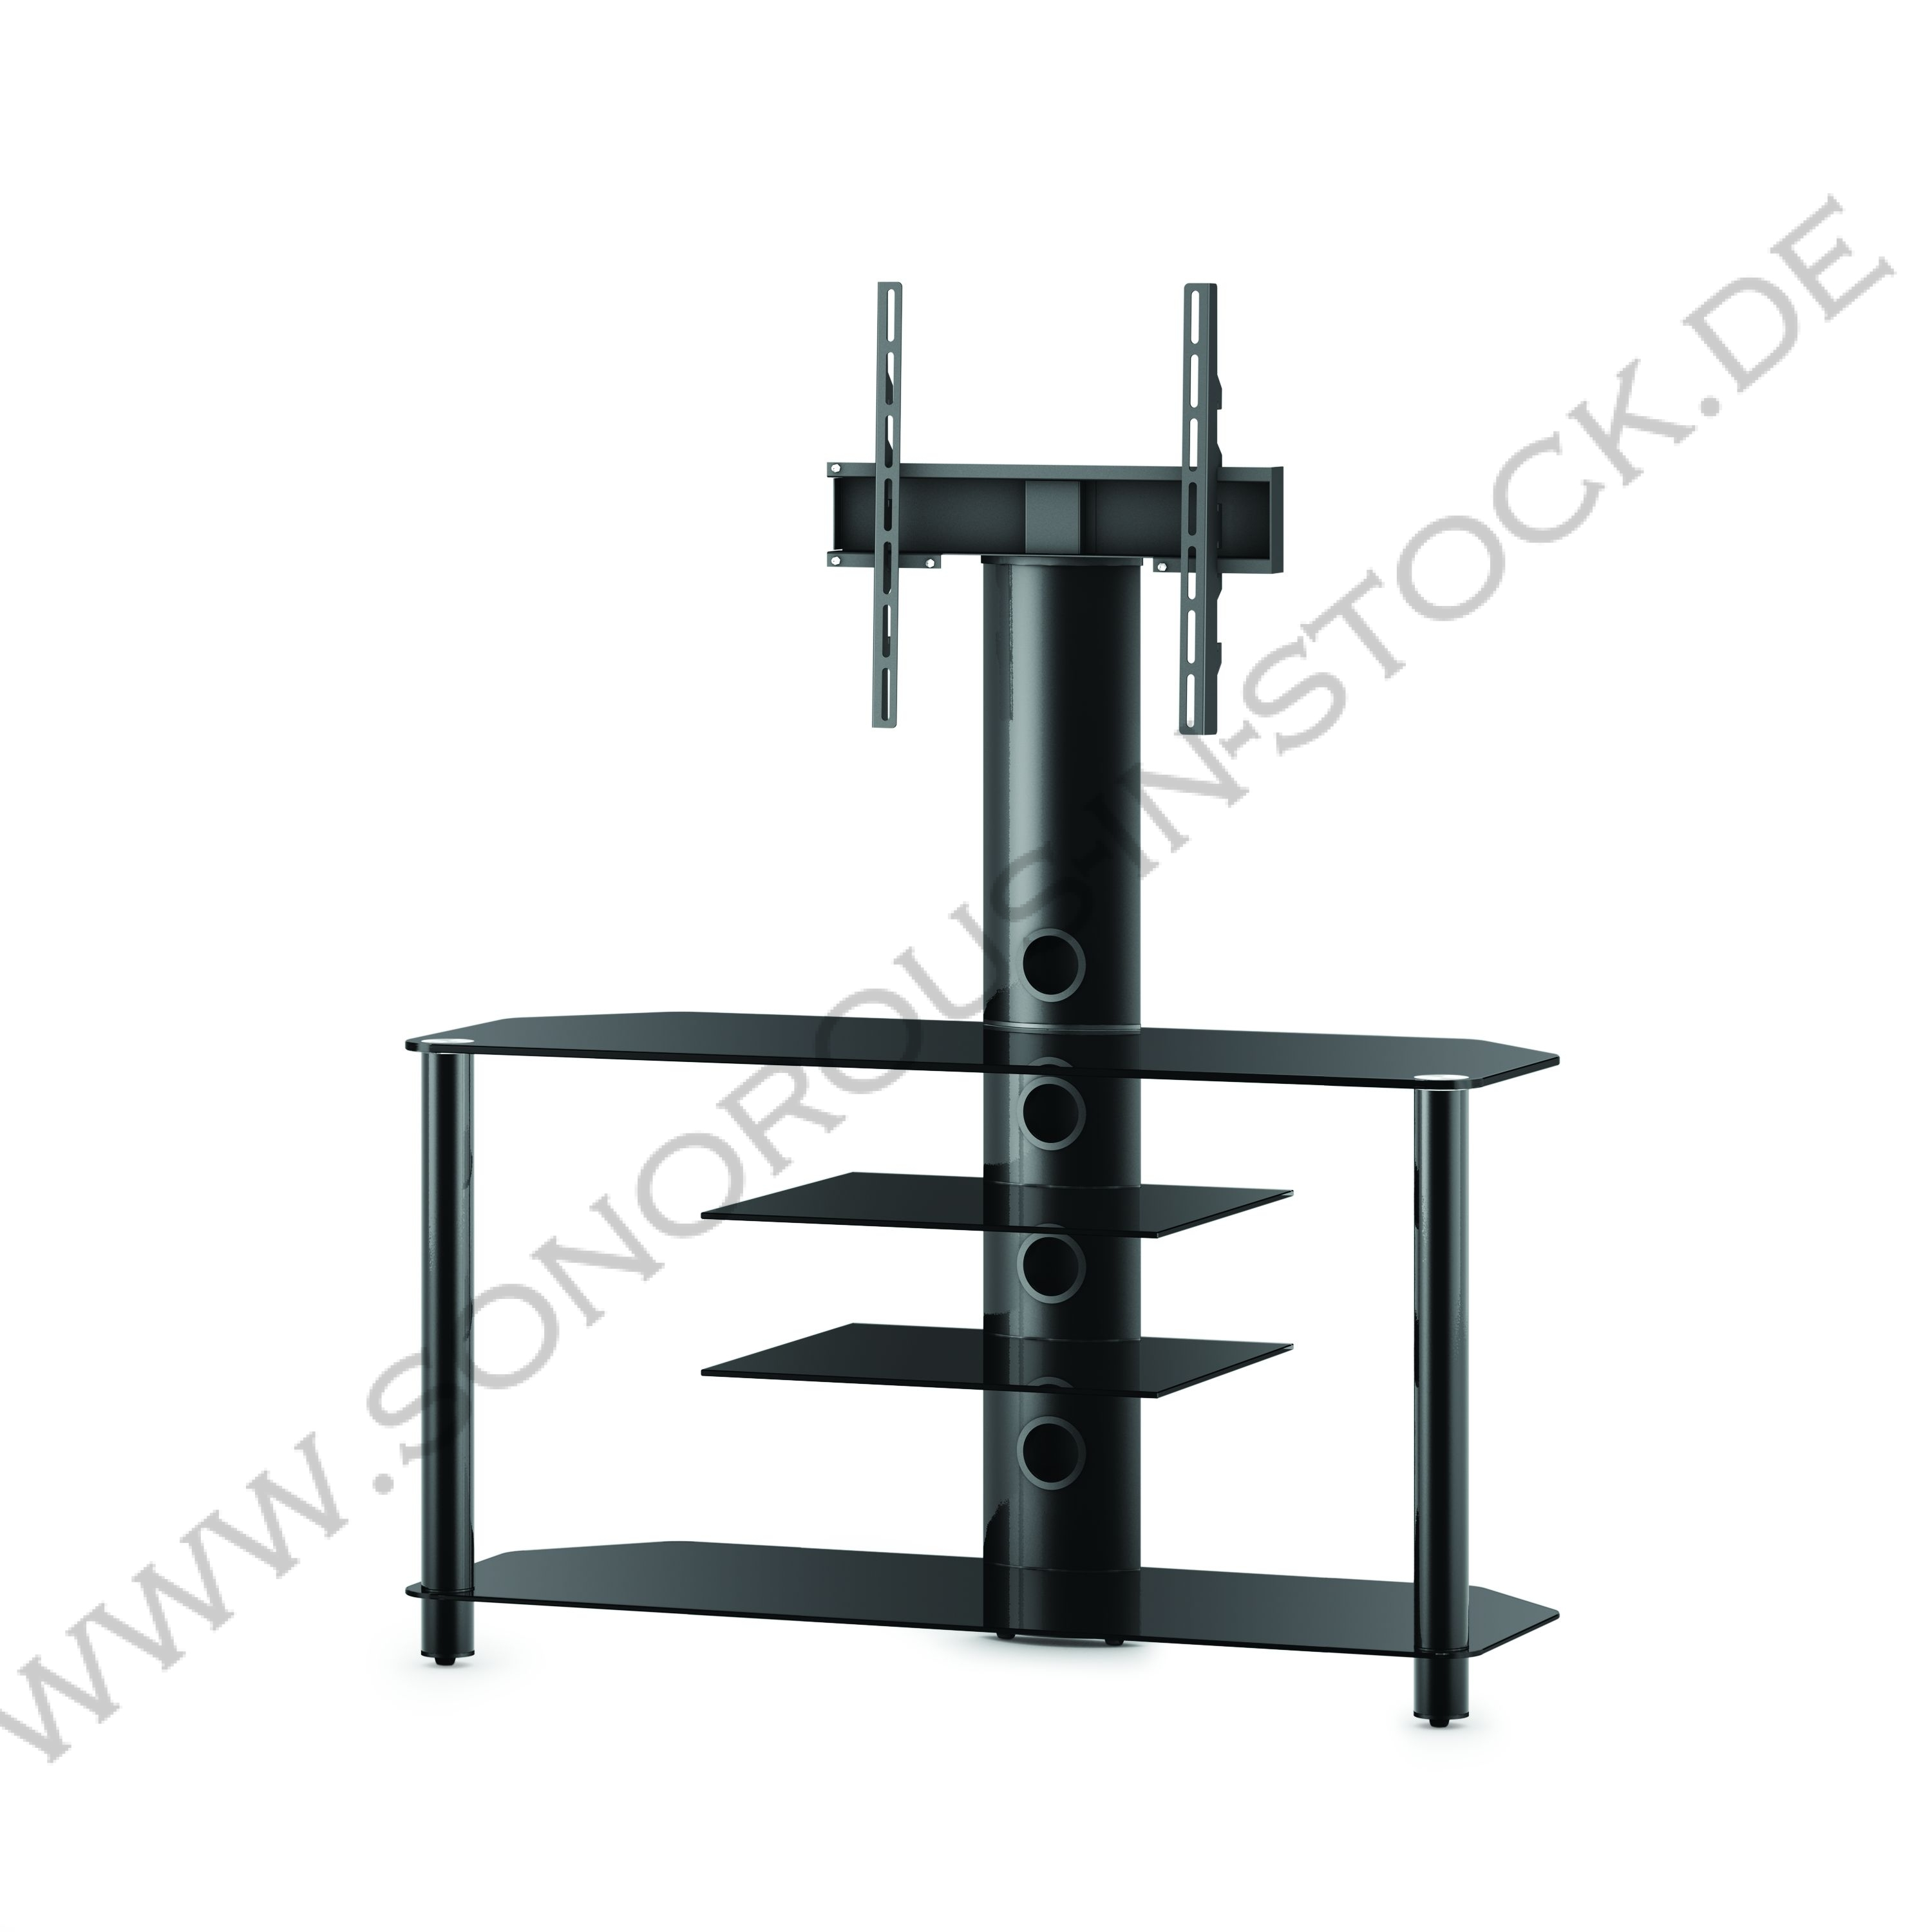 sonorous tv rack tv 46 inch sonorous neo 1114 b hblk neo 1114 b hblk. Black Bedroom Furniture Sets. Home Design Ideas